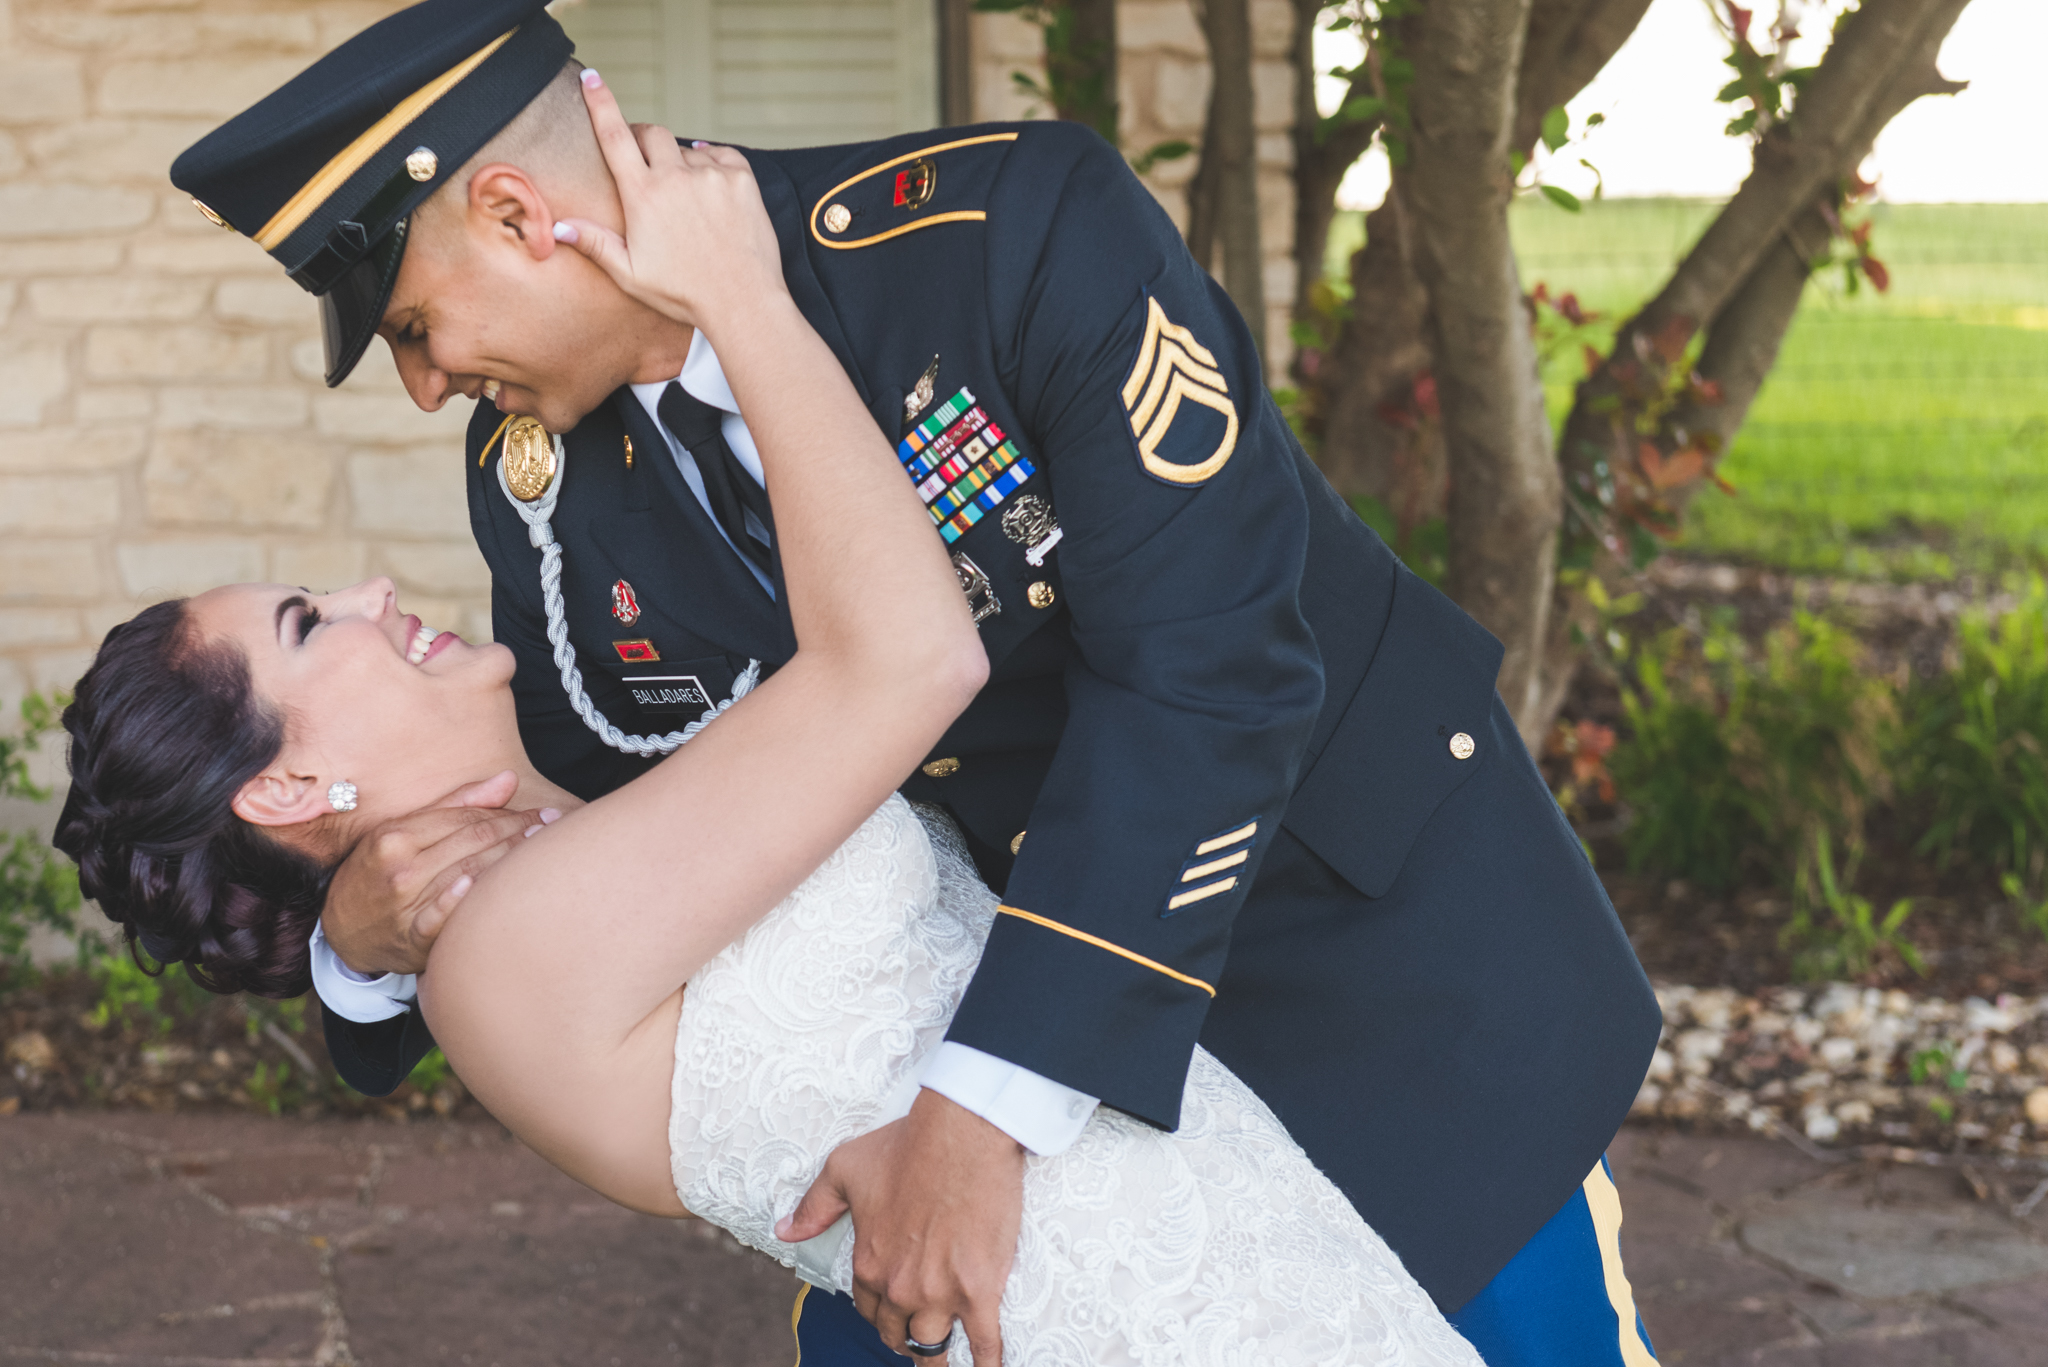 In the arms of her soldier